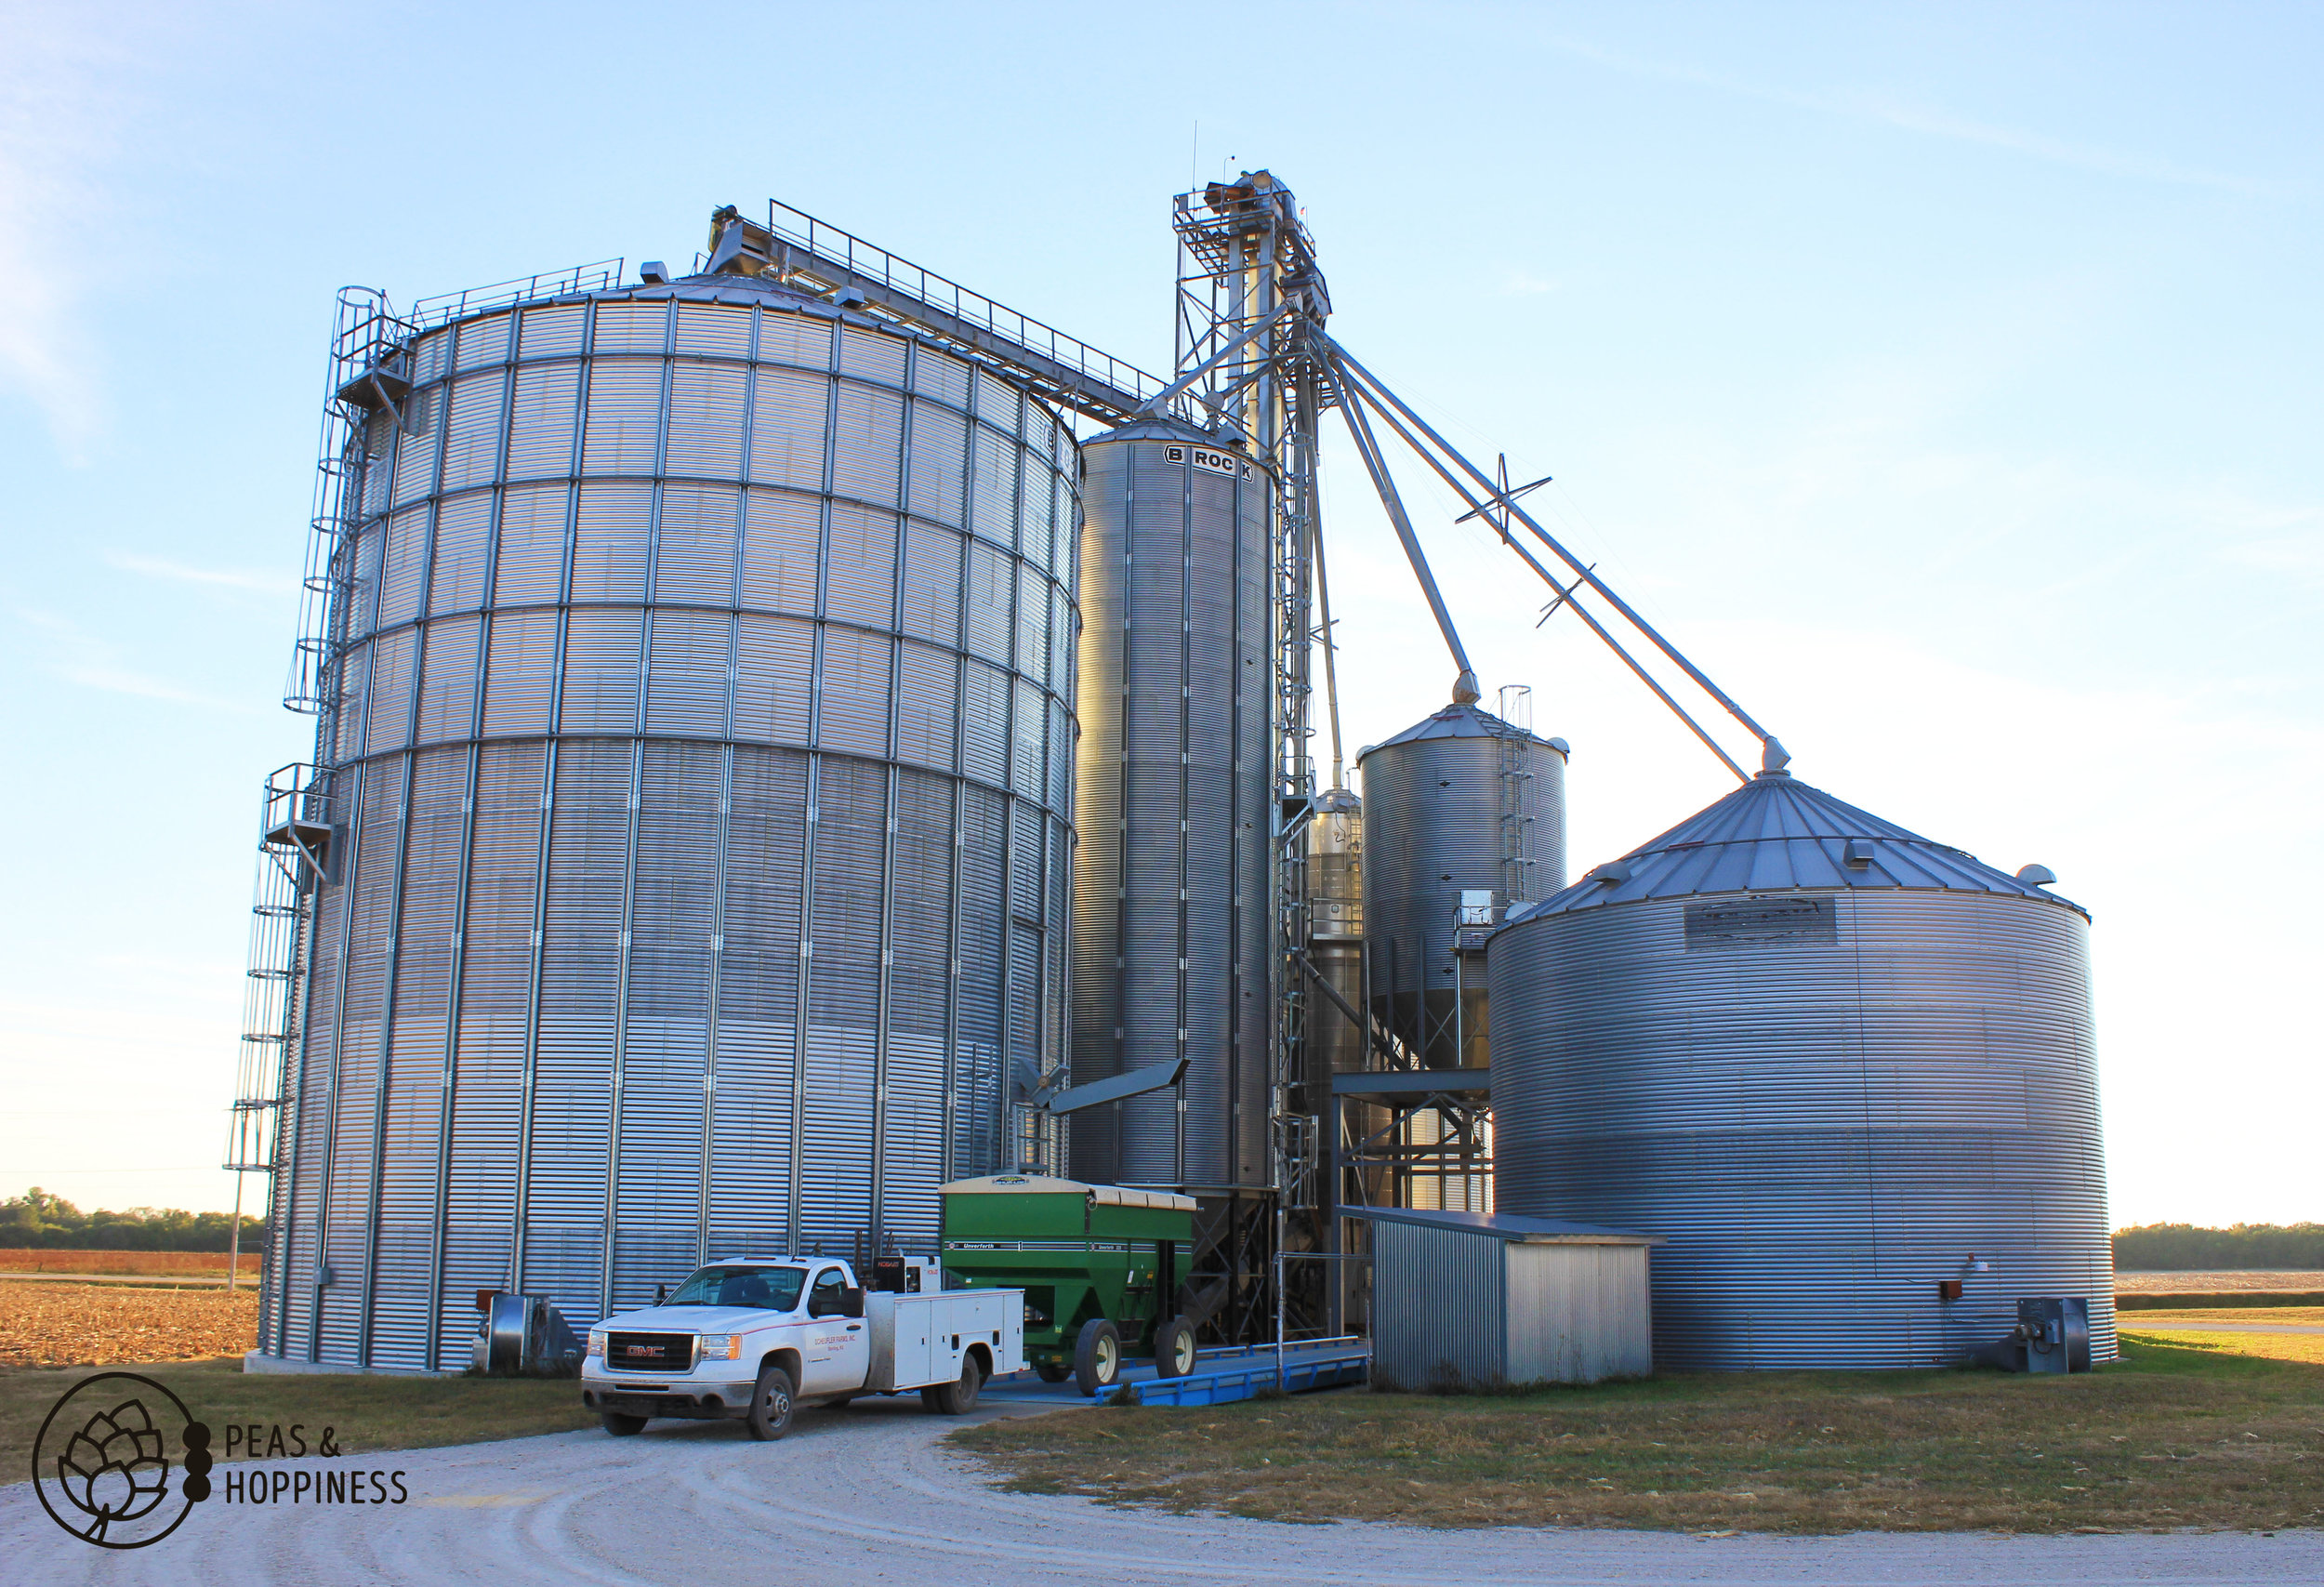 On-farm grain storage that allows quick emptying of trucks during harvest (no waiting in line!) and the ability to hold grain until prices climb in the off-season